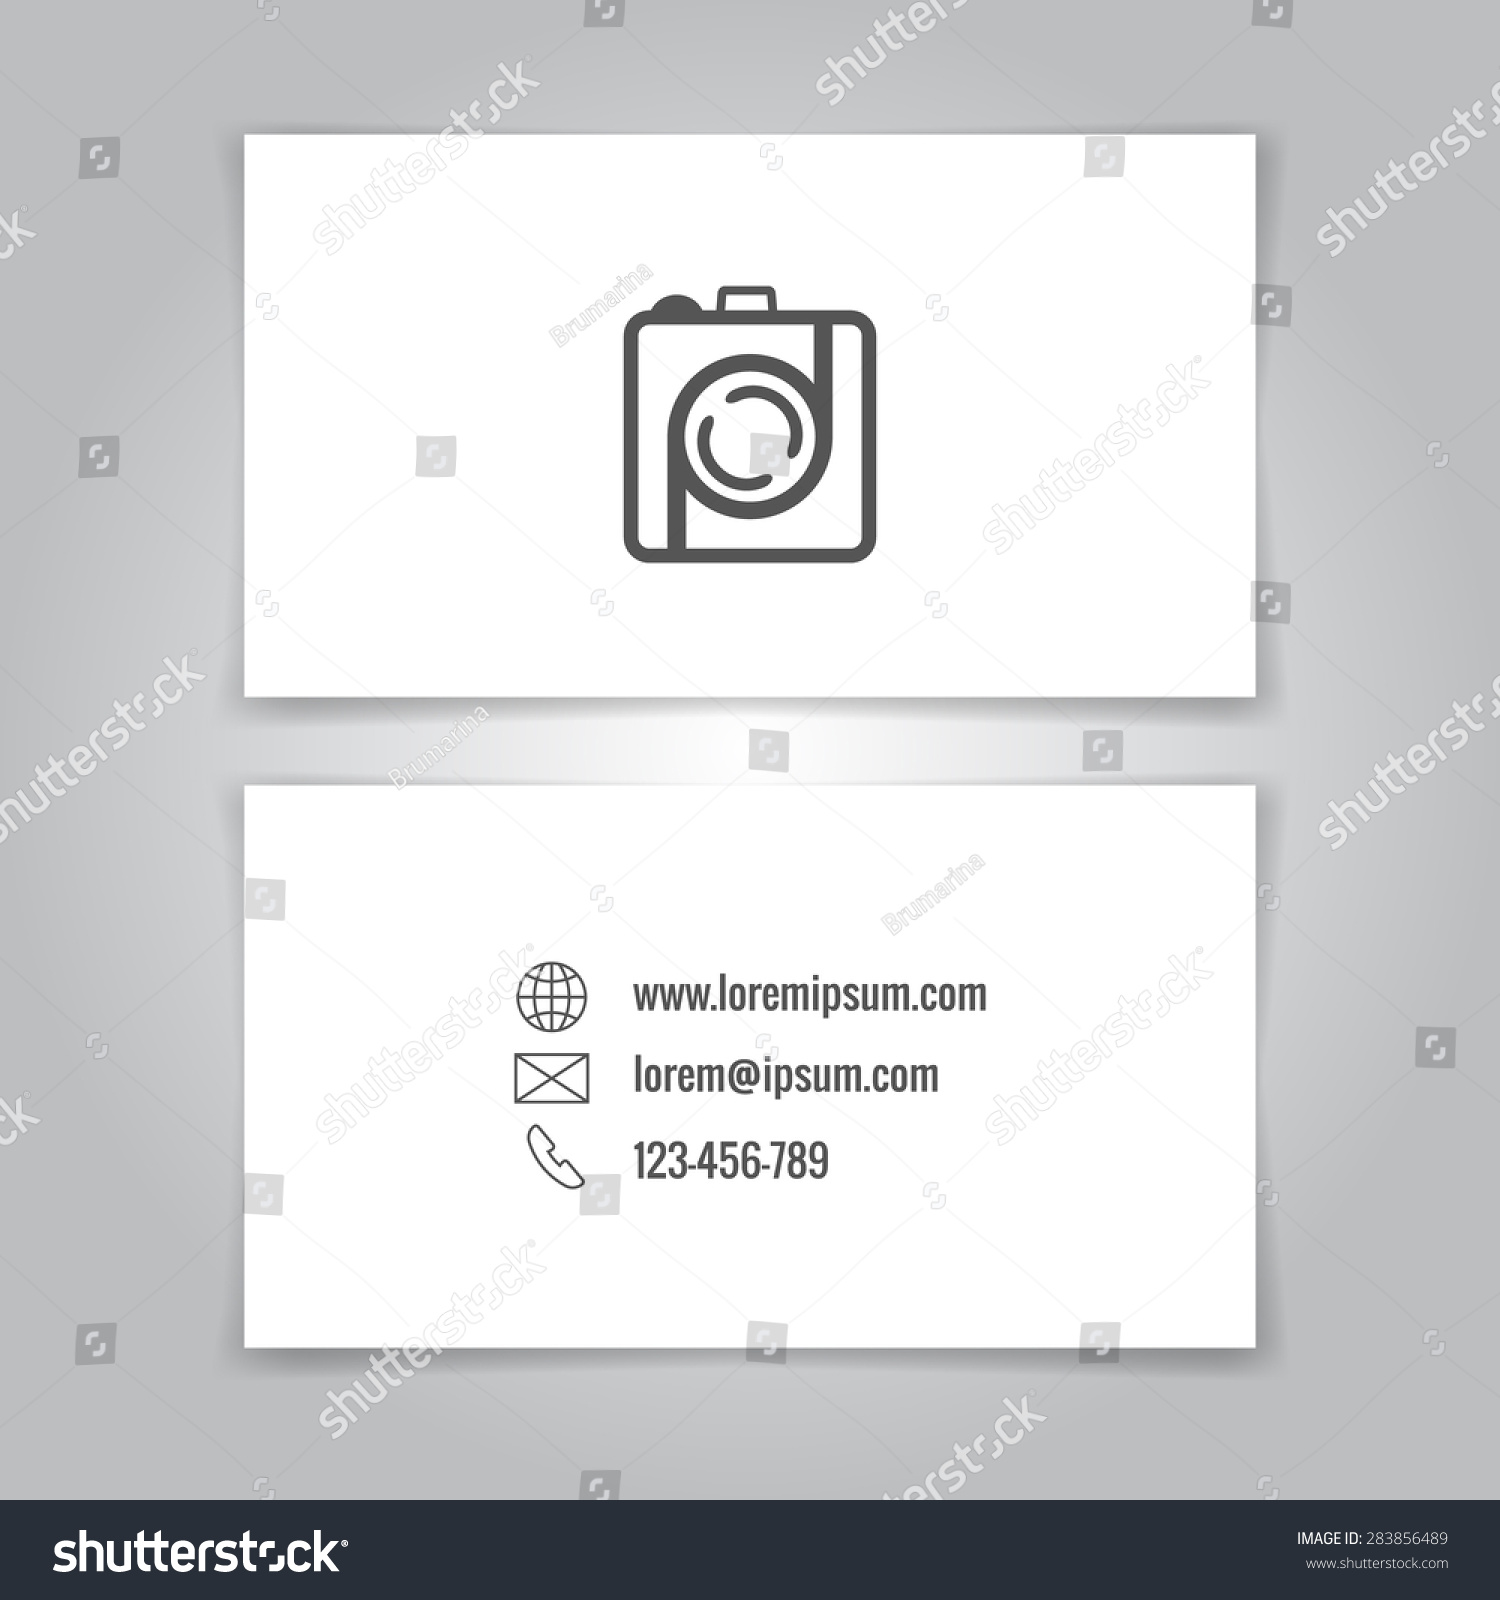 Modern Simple Business Card Template Camera Stock Vector 283856489 ...